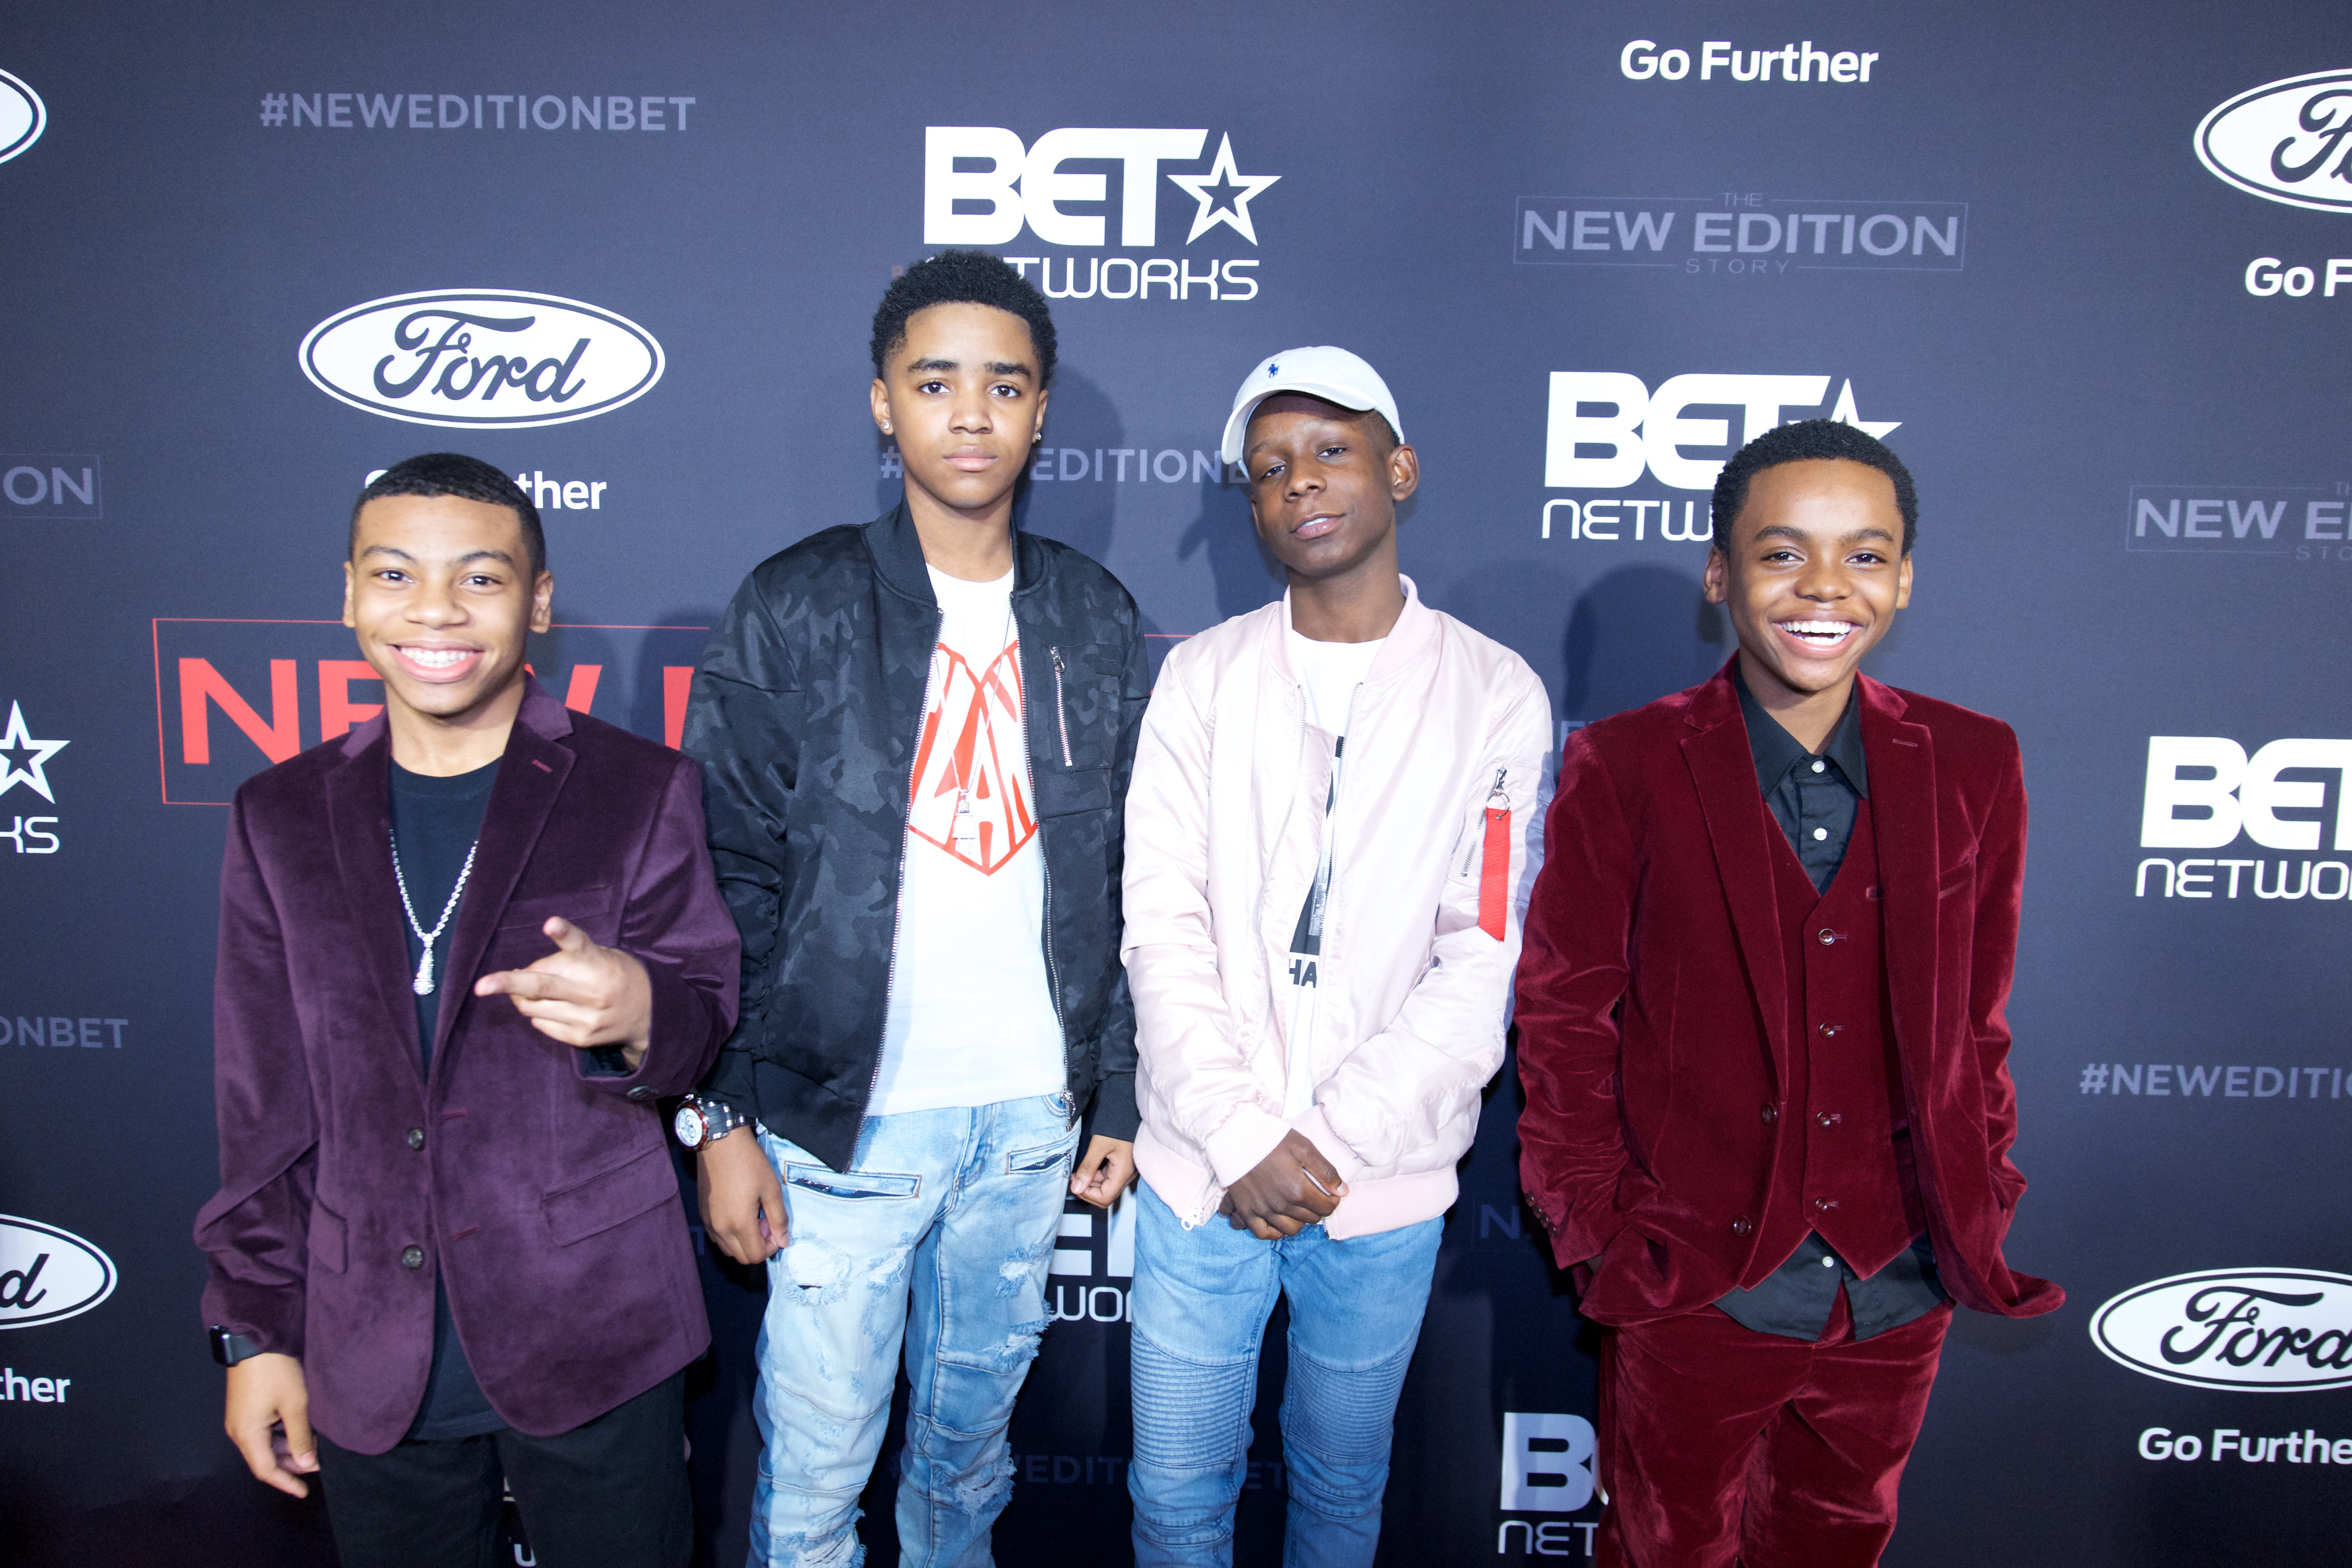 (L-R) Dante Hoagland (portrays Michael Bivins), Myles Truitt (portrays Ronnie Devoe), Tyler Williams (portrays Bobby Brown) and Jahi Winston (portrays Ralph Tresvant) at the premiere of BETs 'The New Edition Story' (Photo by Earl Gibson III/Getty Images for BET)